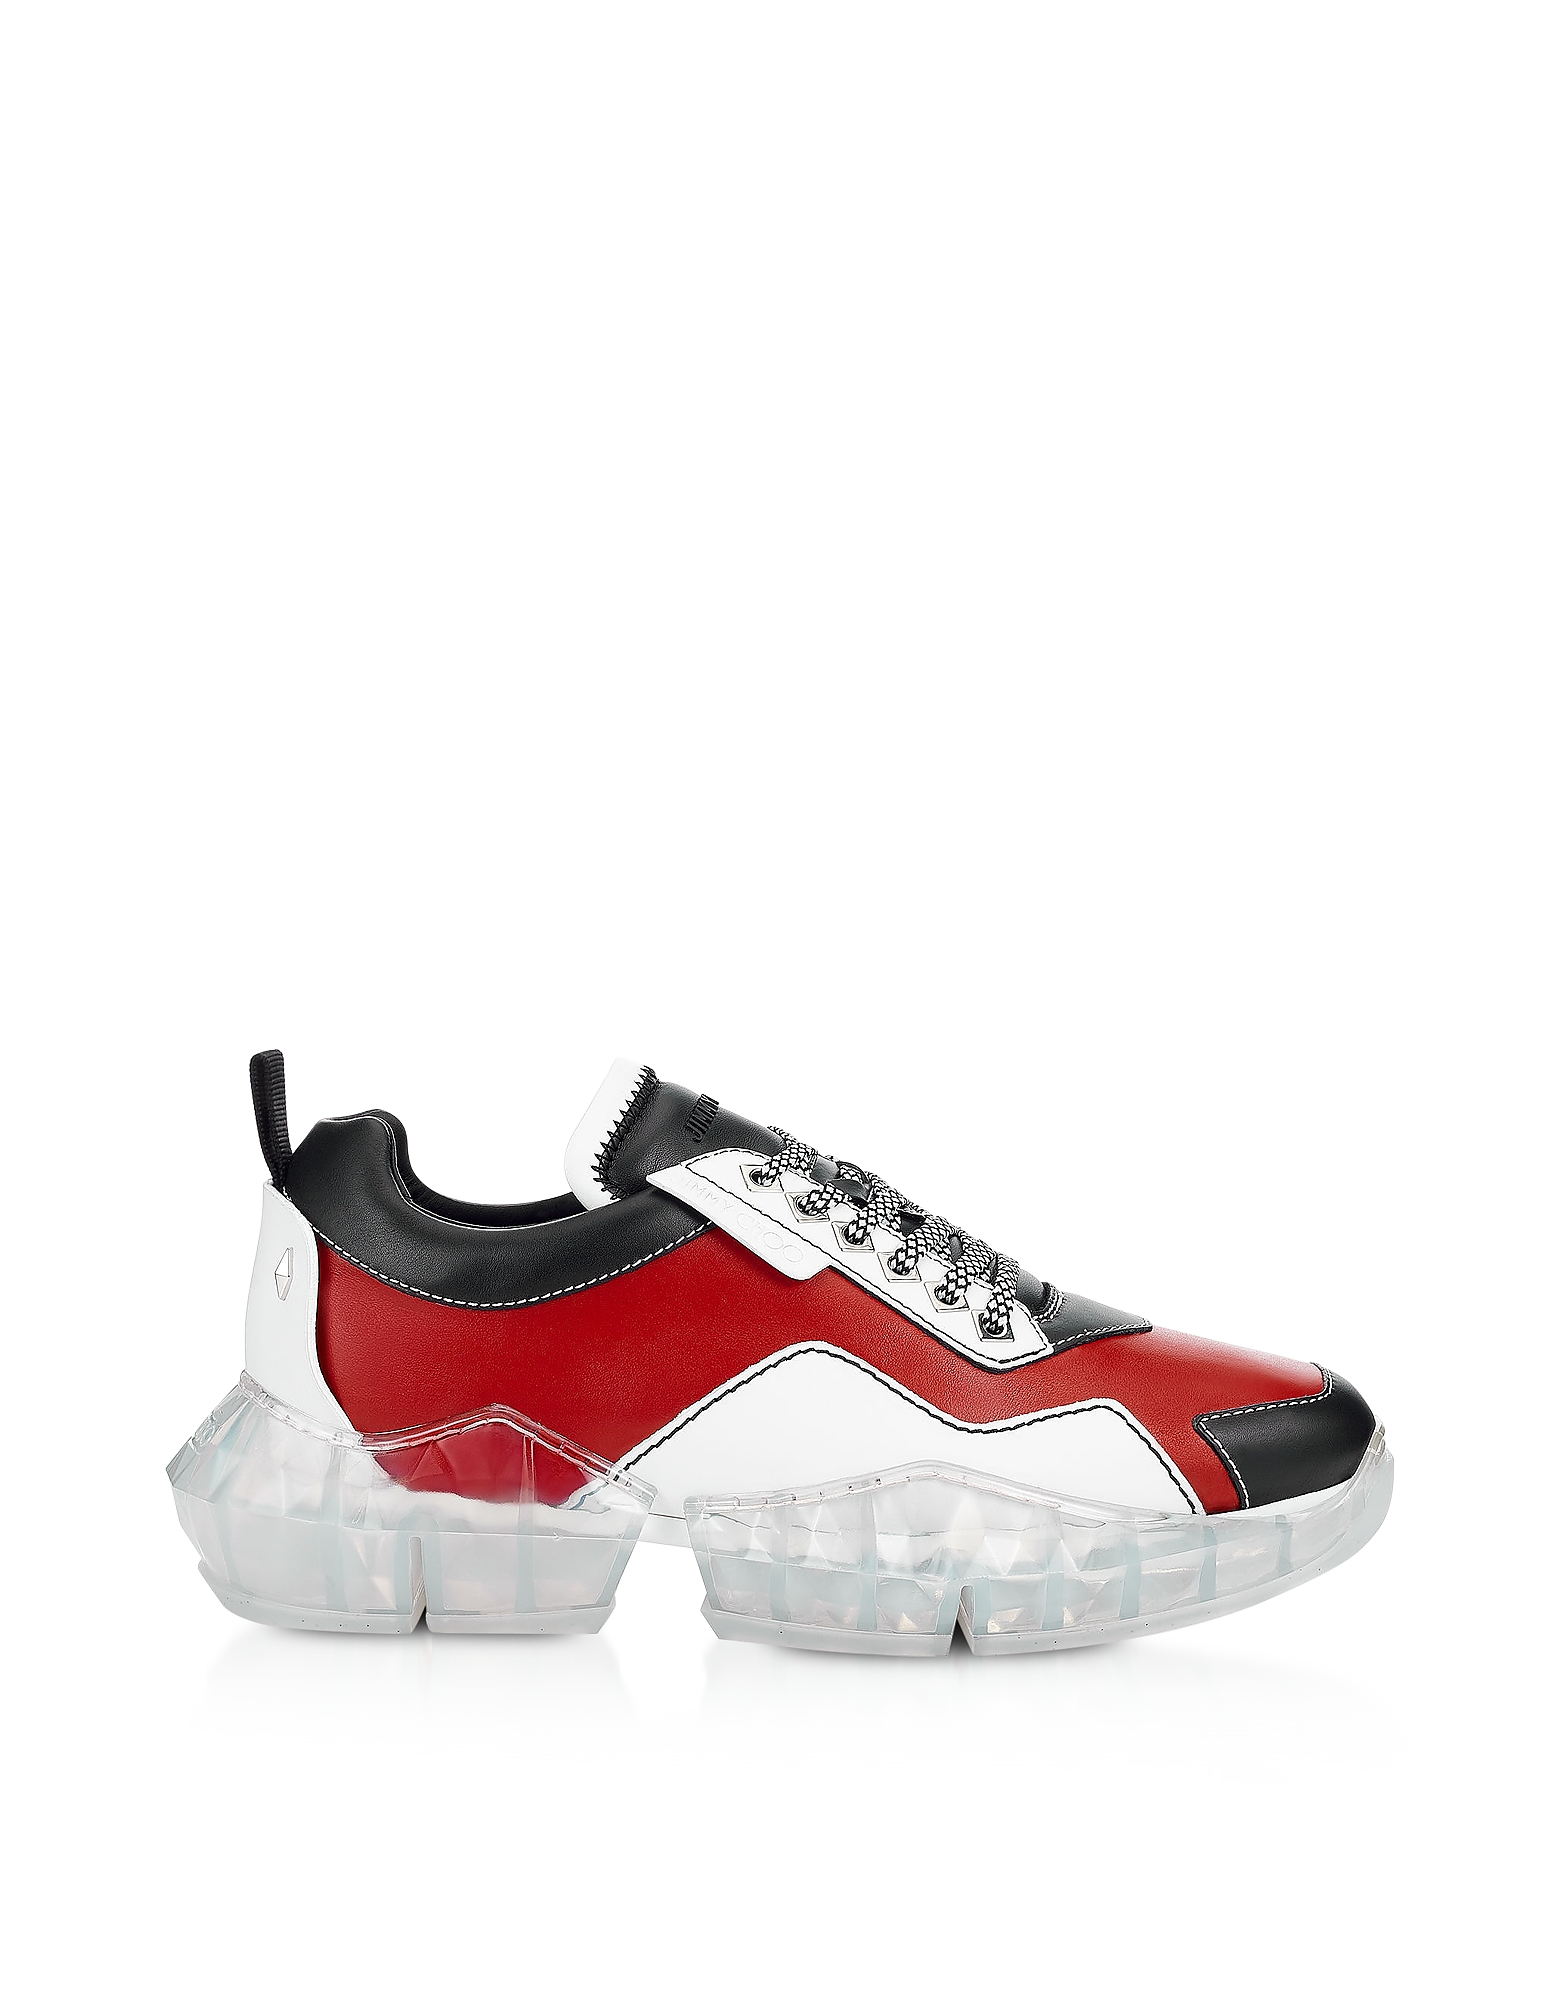 Red & Black Soft Leather DIAMOND/M Low Top Trainers